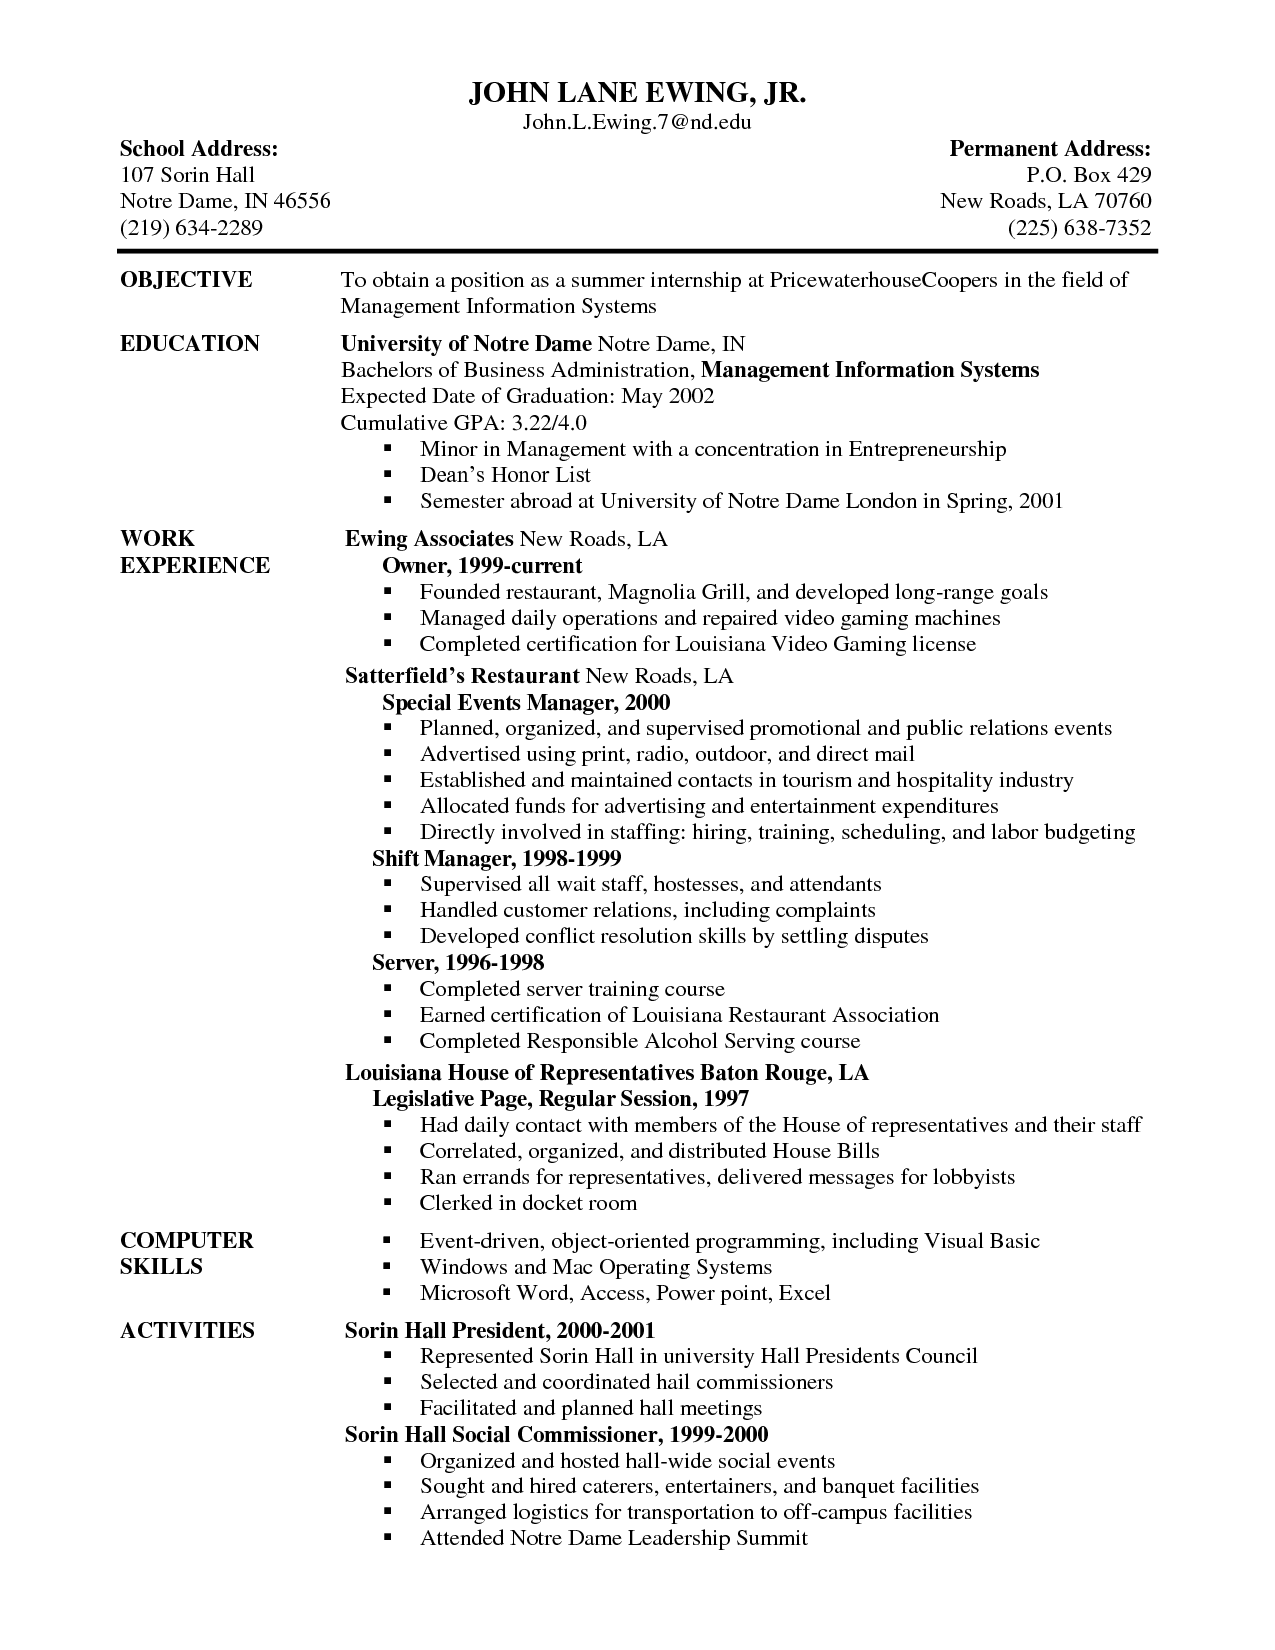 Cashier Duties Resume Server Resume Skills Template Doc Serving Job Examples Description